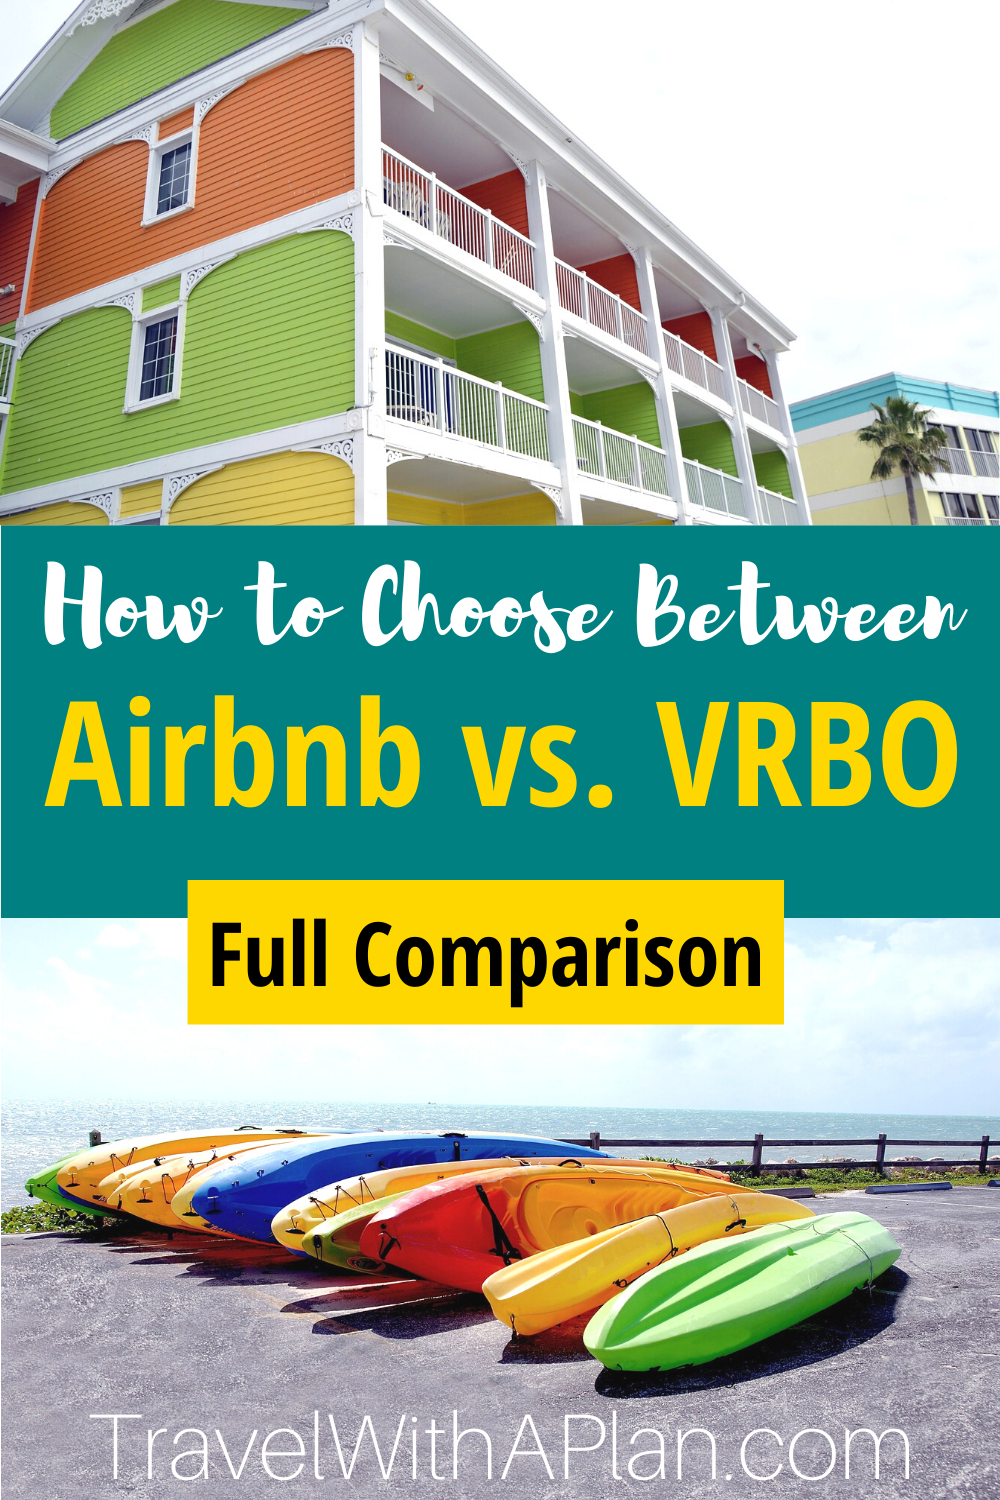 Learn the differences between VRBO vs. Airbnb from Top US Family Travel Blog, Travel With A Plan!